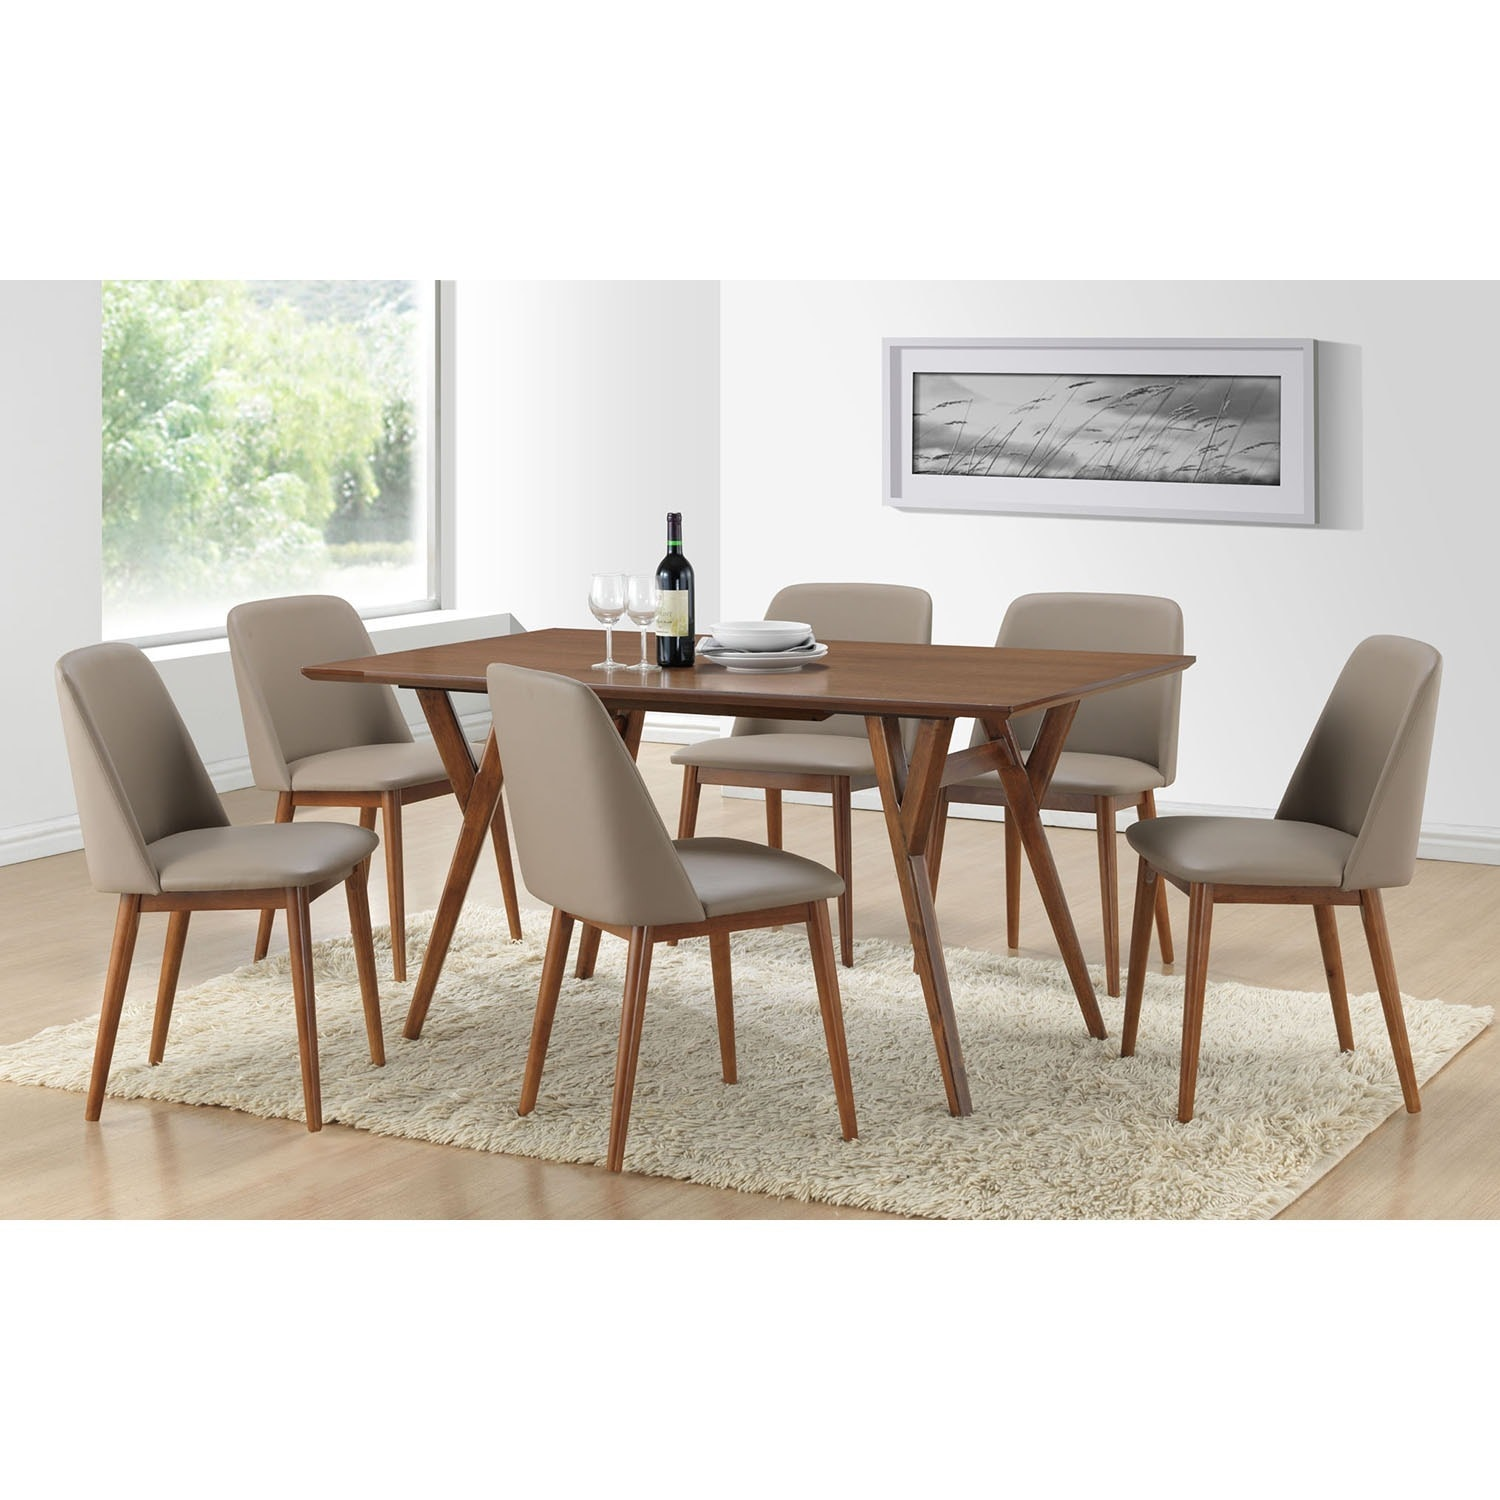 Captivating Lavin Mid Century Solid Wood 7 Piece Dining Set   Free Shipping Today    Overstock   17281507